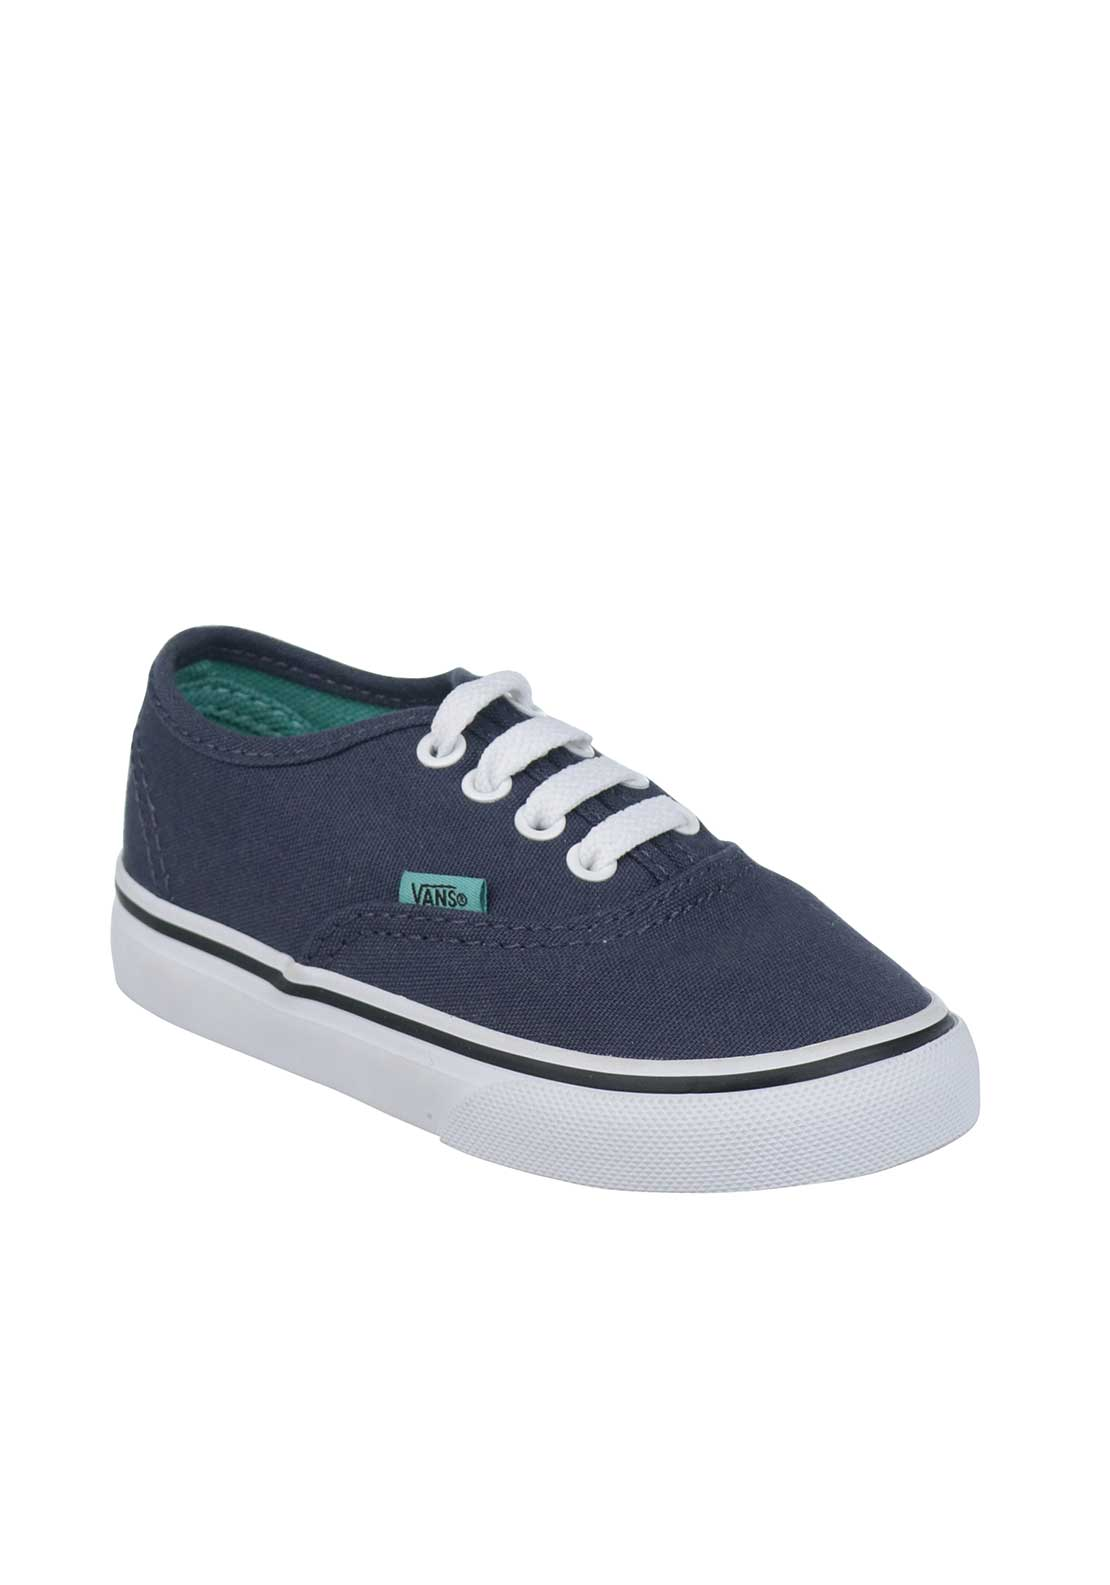 Vans Baby Boys Canvas Trainers. Navy